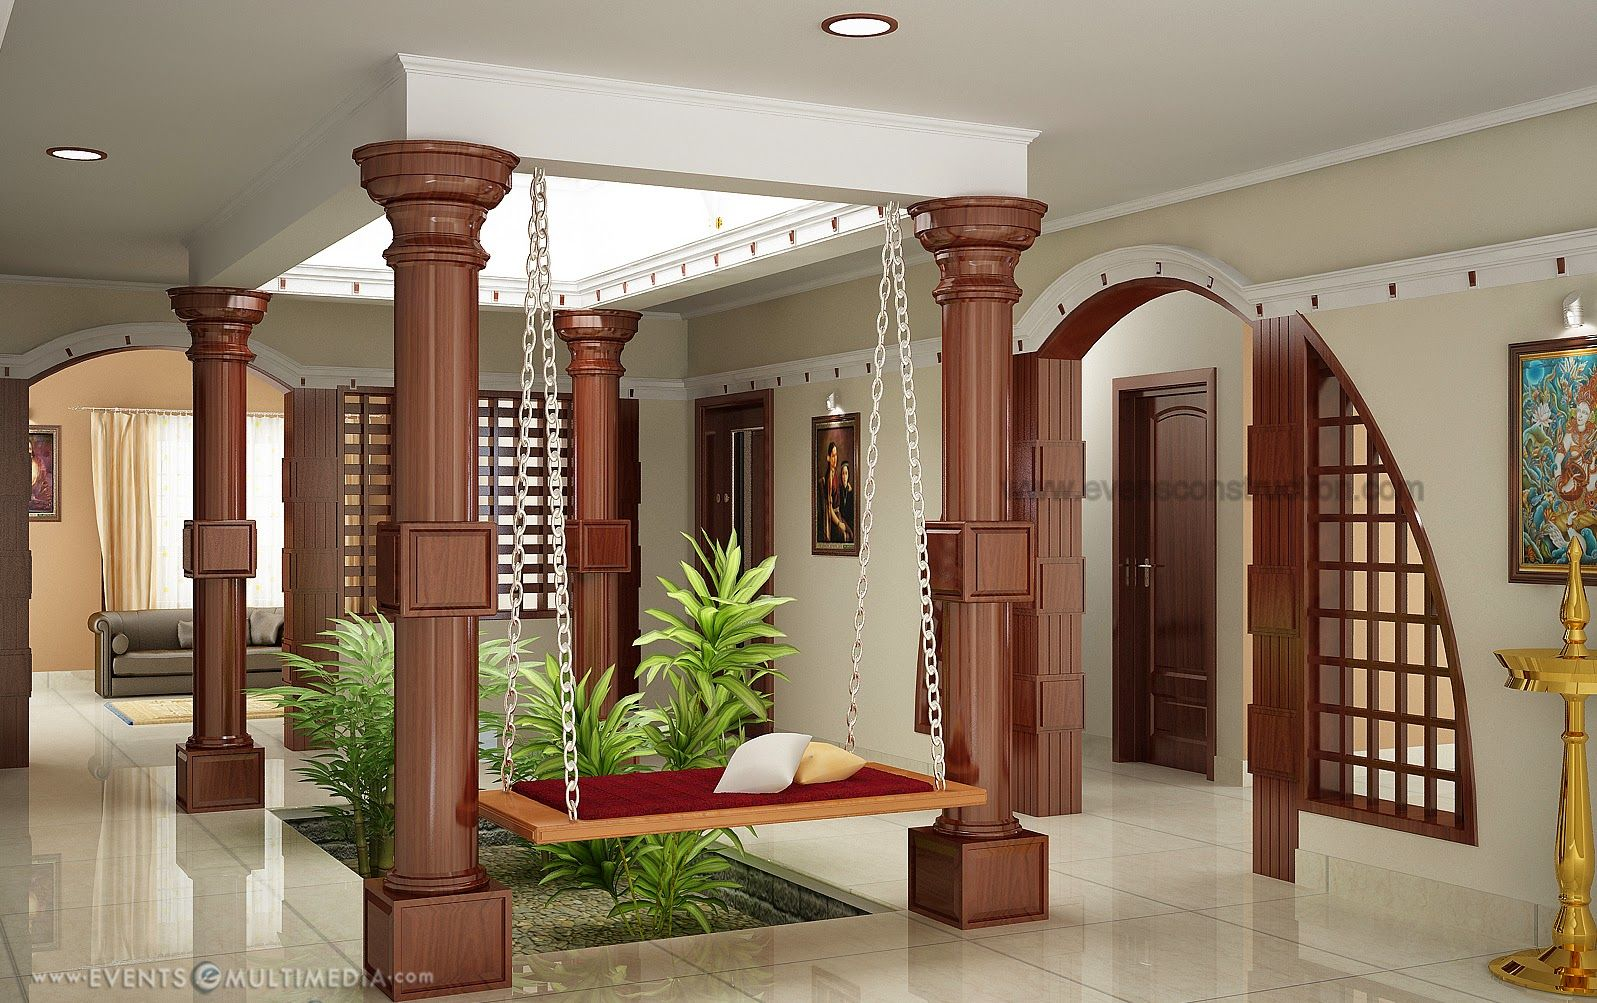 Interior design kerala google search inside and for Kerala home interior